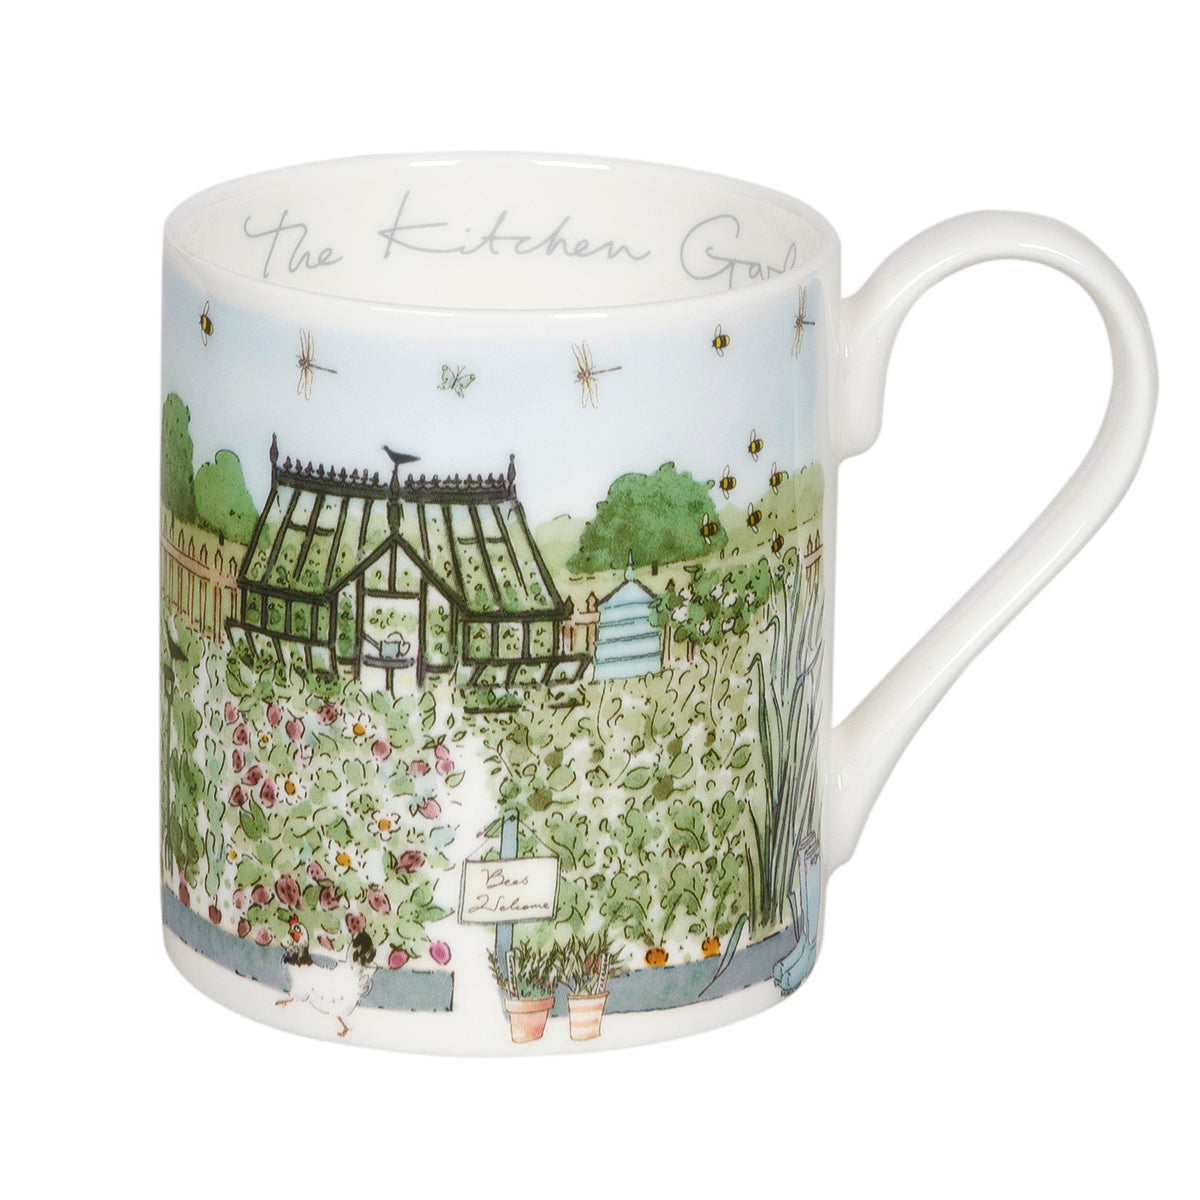 The Kitchen Garden Mug by Sophie Allport